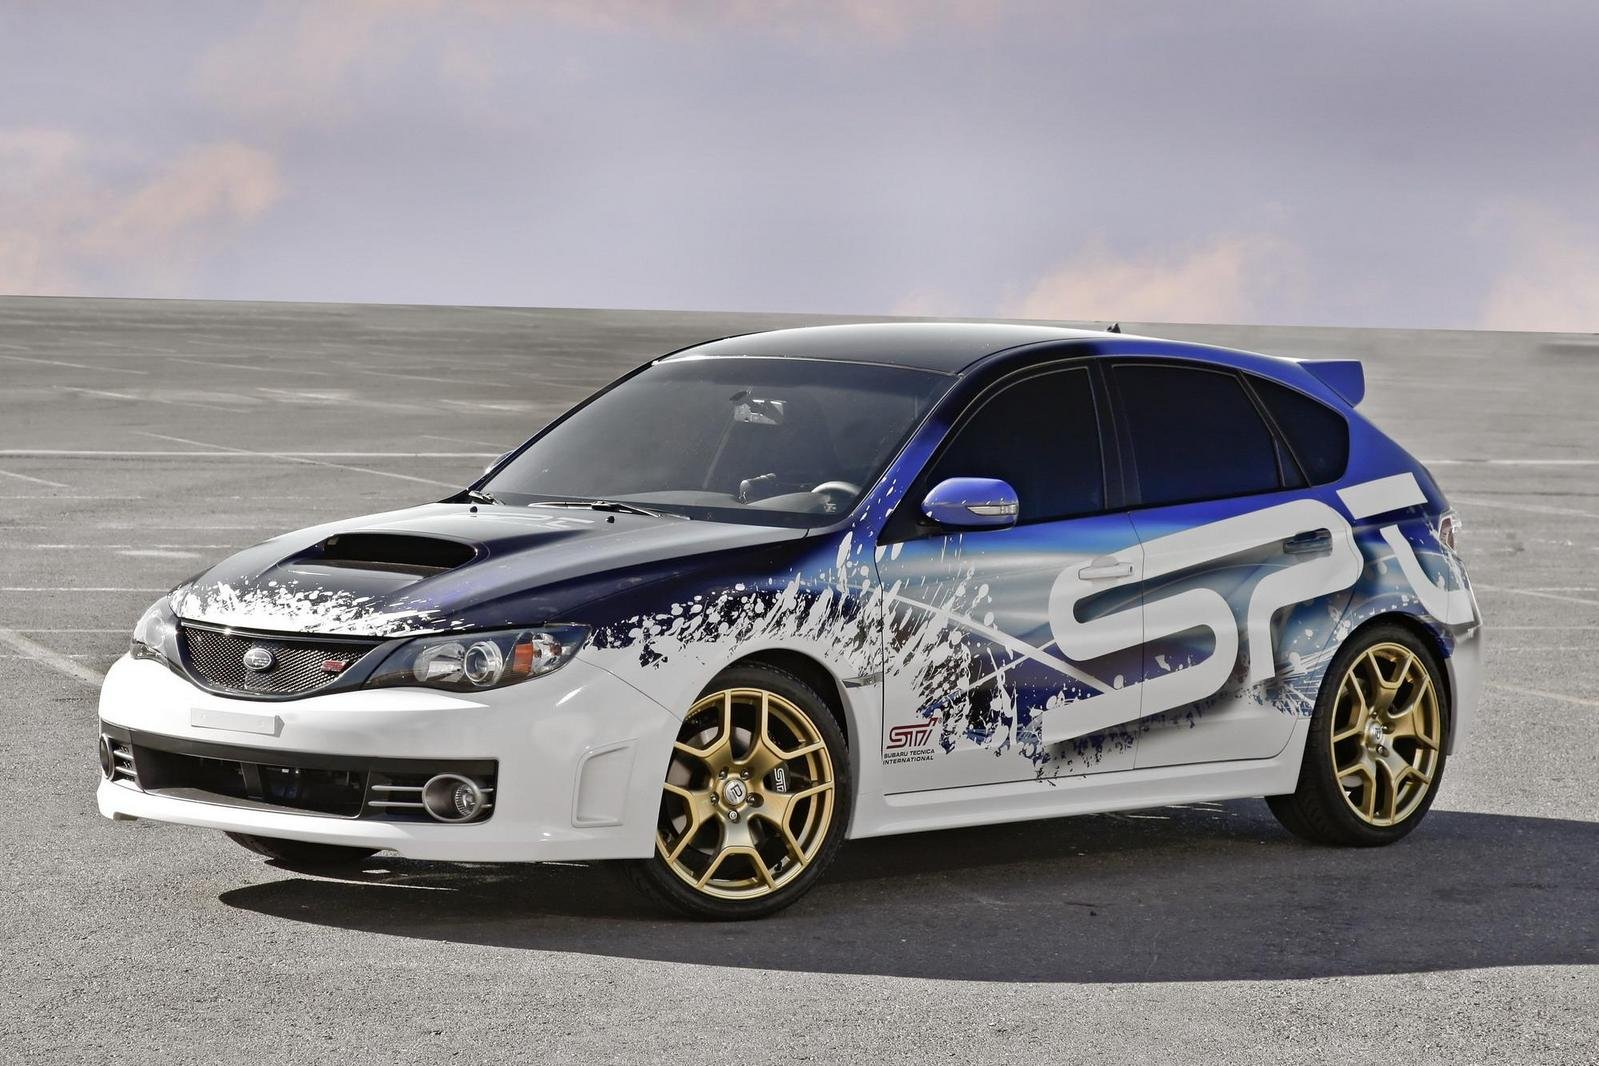 2009 subaru wrx sti by spt review gallery top speed. Black Bedroom Furniture Sets. Home Design Ideas